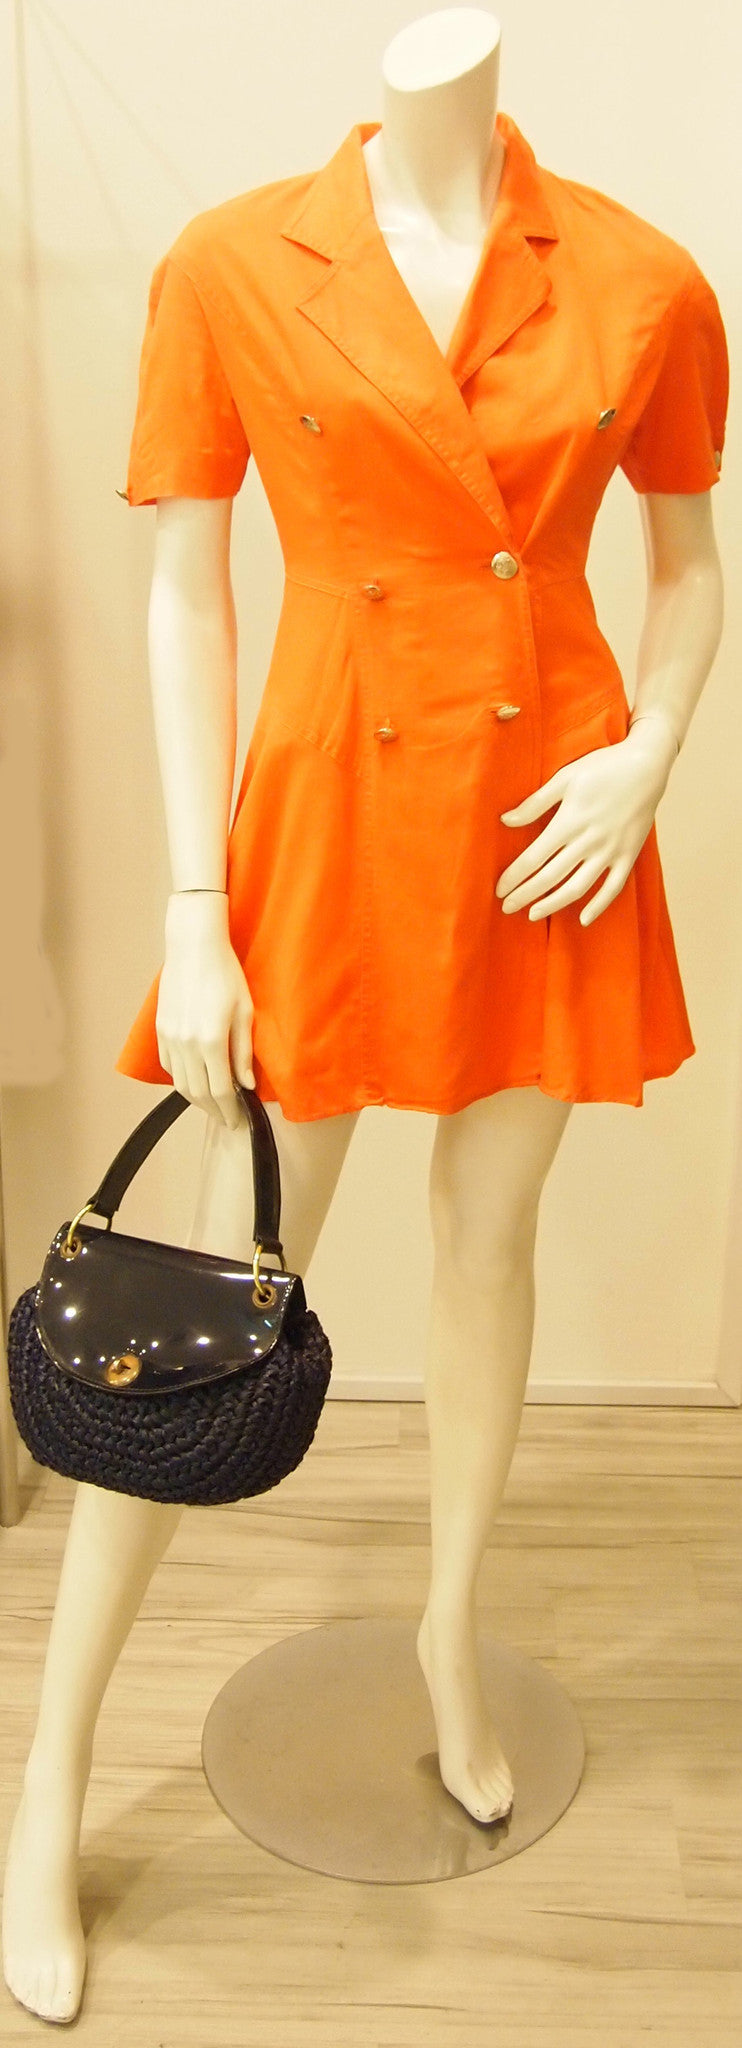 80s Bright Orange Double-Breasted Dress with Cap Sleeves